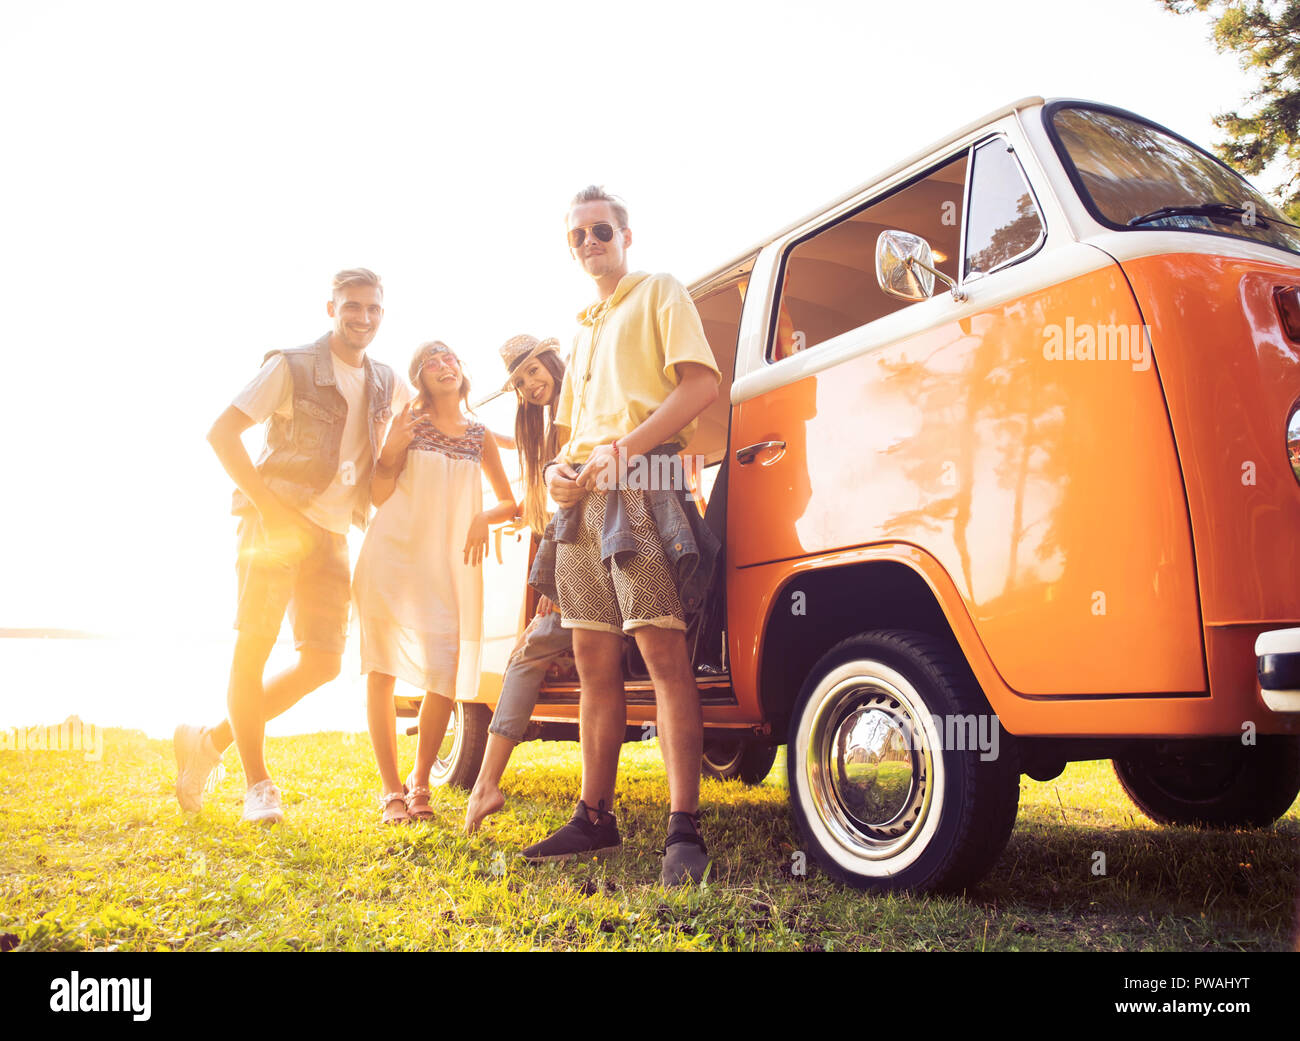 summer holidays, road trip, vacation, travel and people concept - smiling young hippie friends having fun over minivan car. - Stock Image